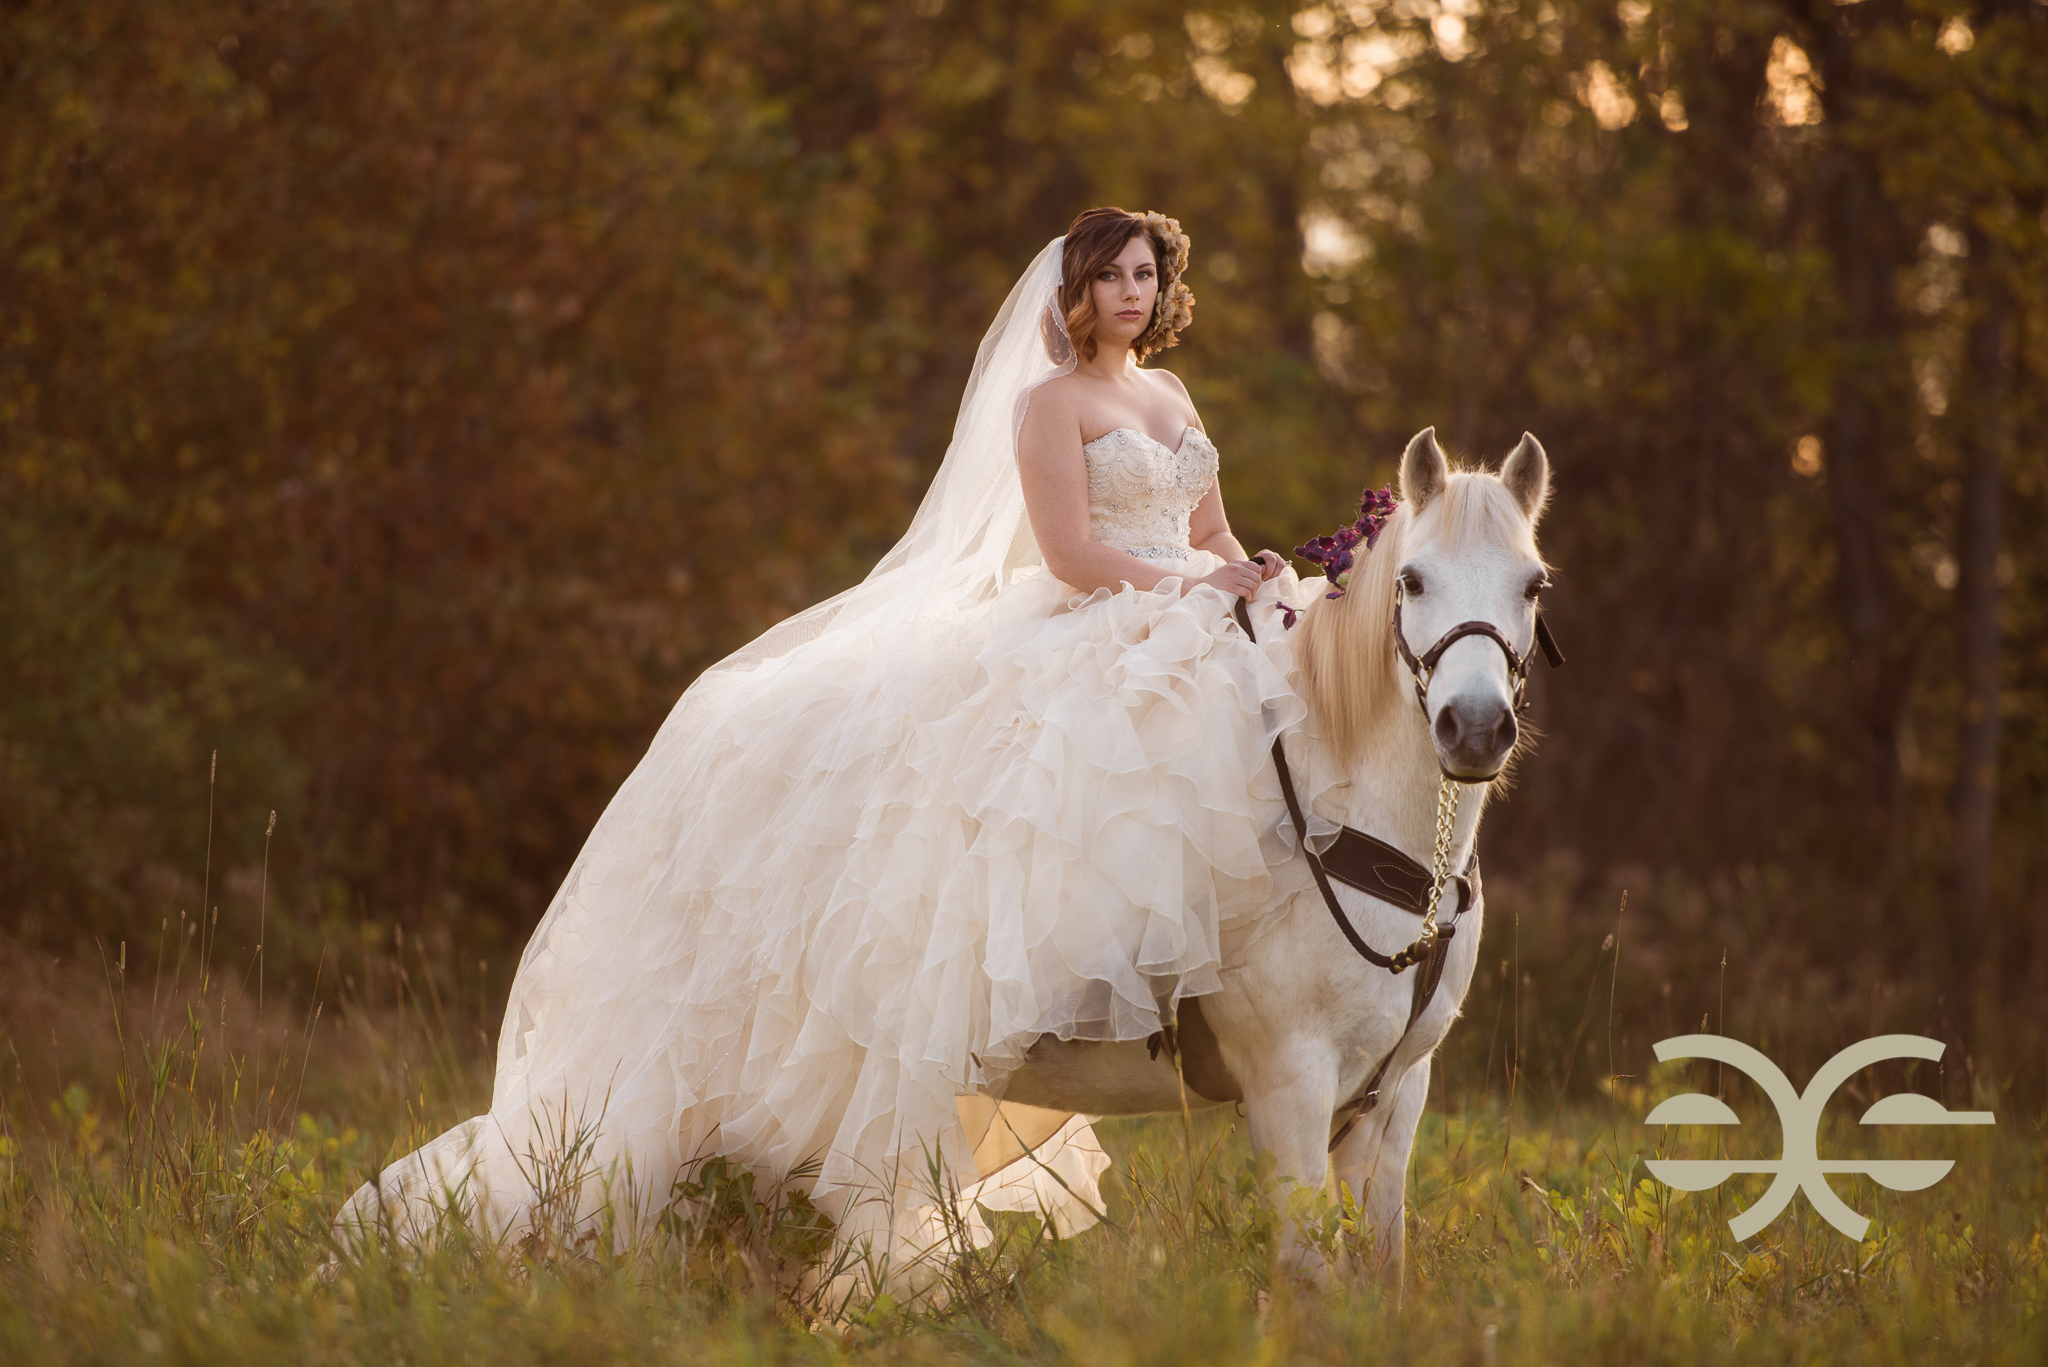 A bride with her horse in Buffalo, NY